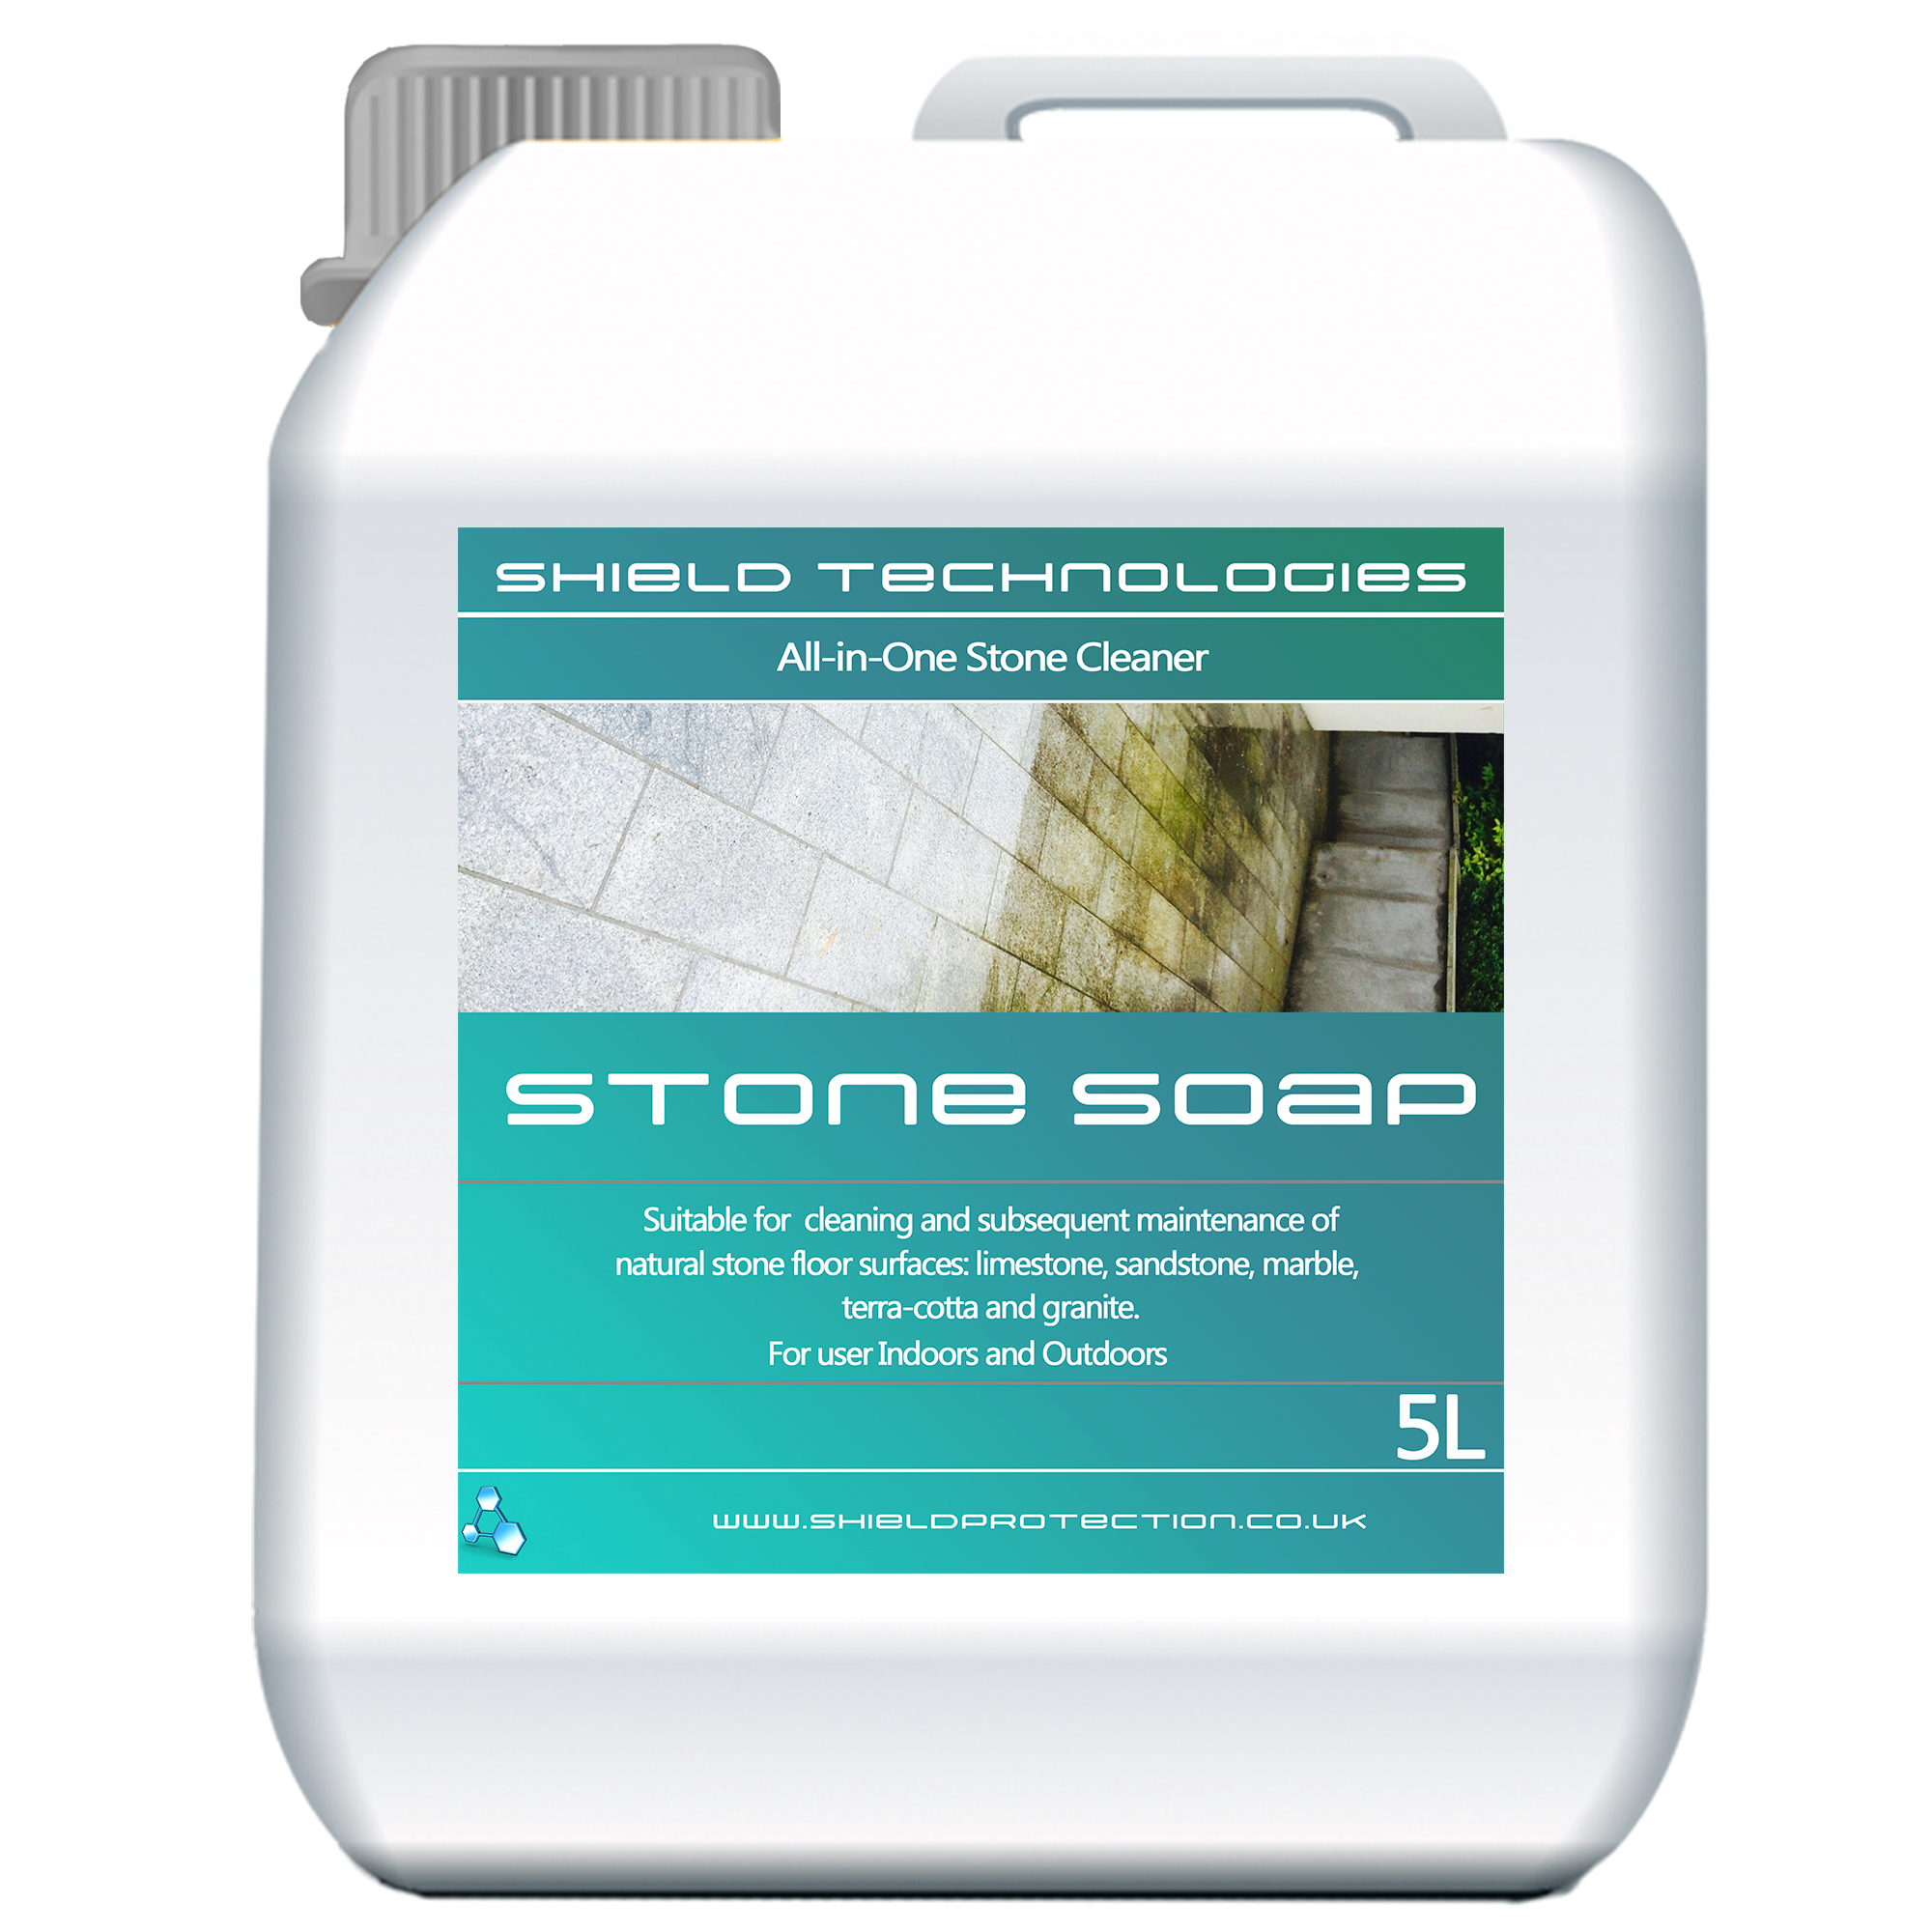 Stone Soap Shield Technologies